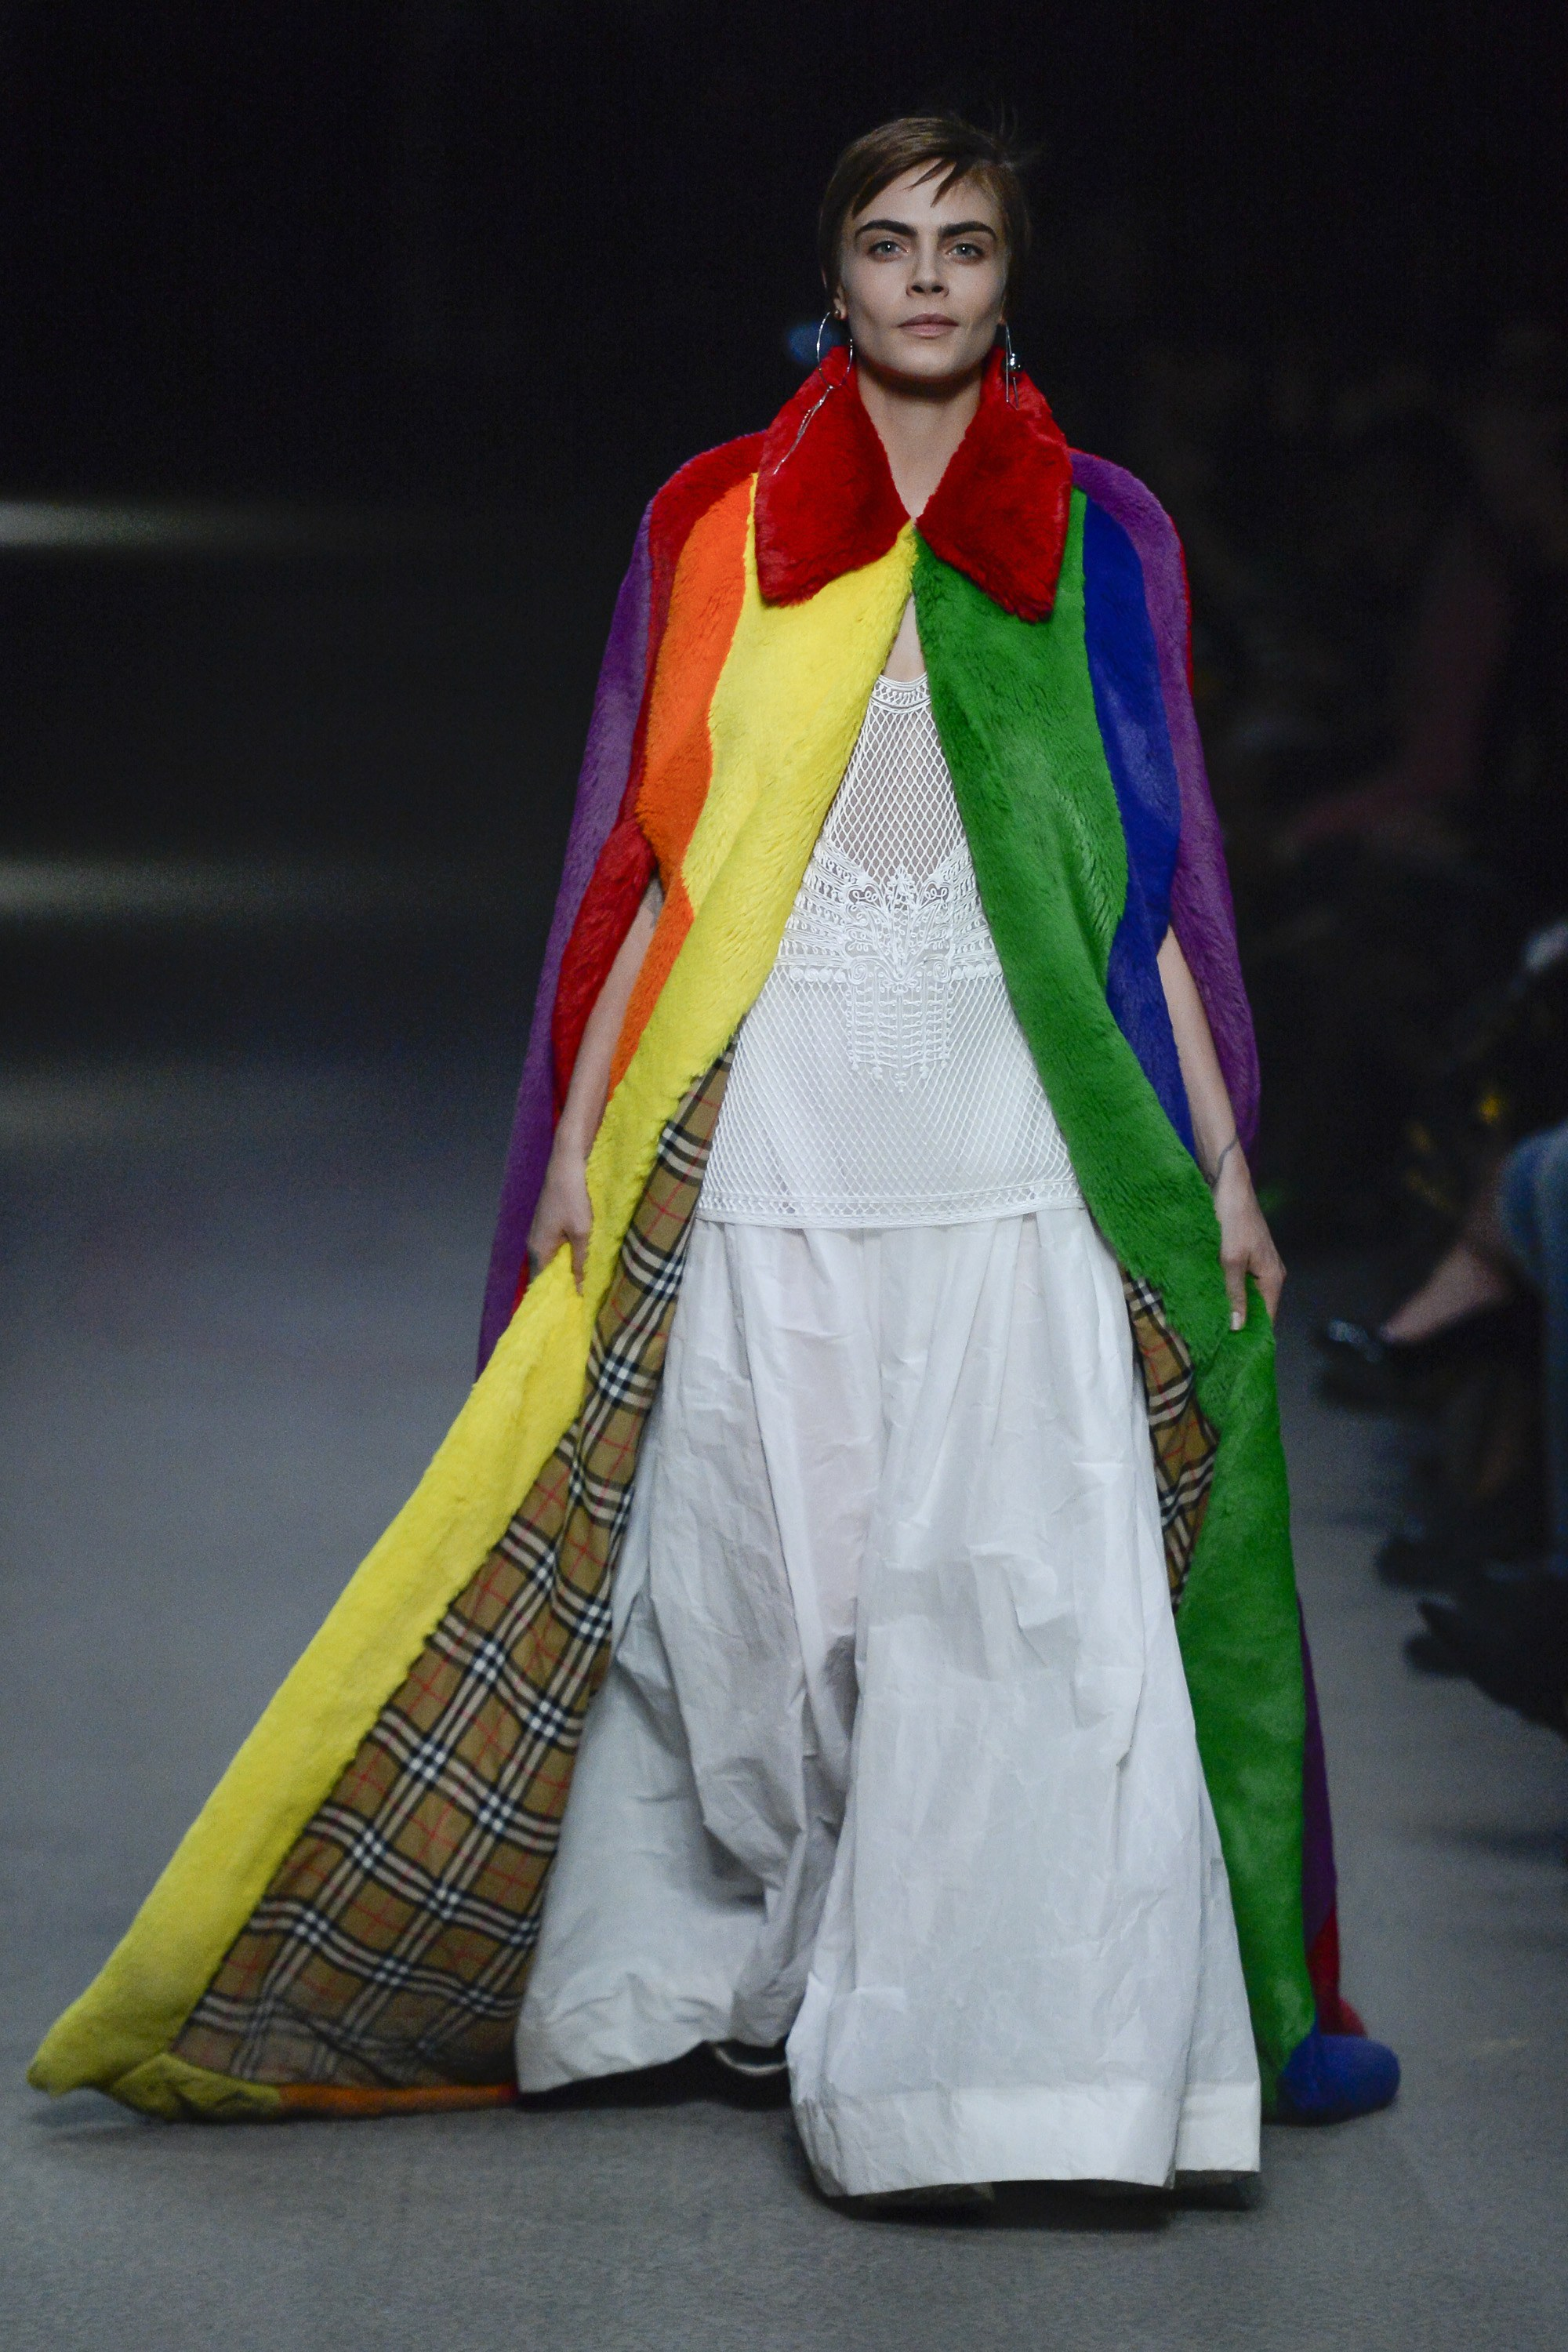 La colorida despedida de Christopher Bailey en Burberry